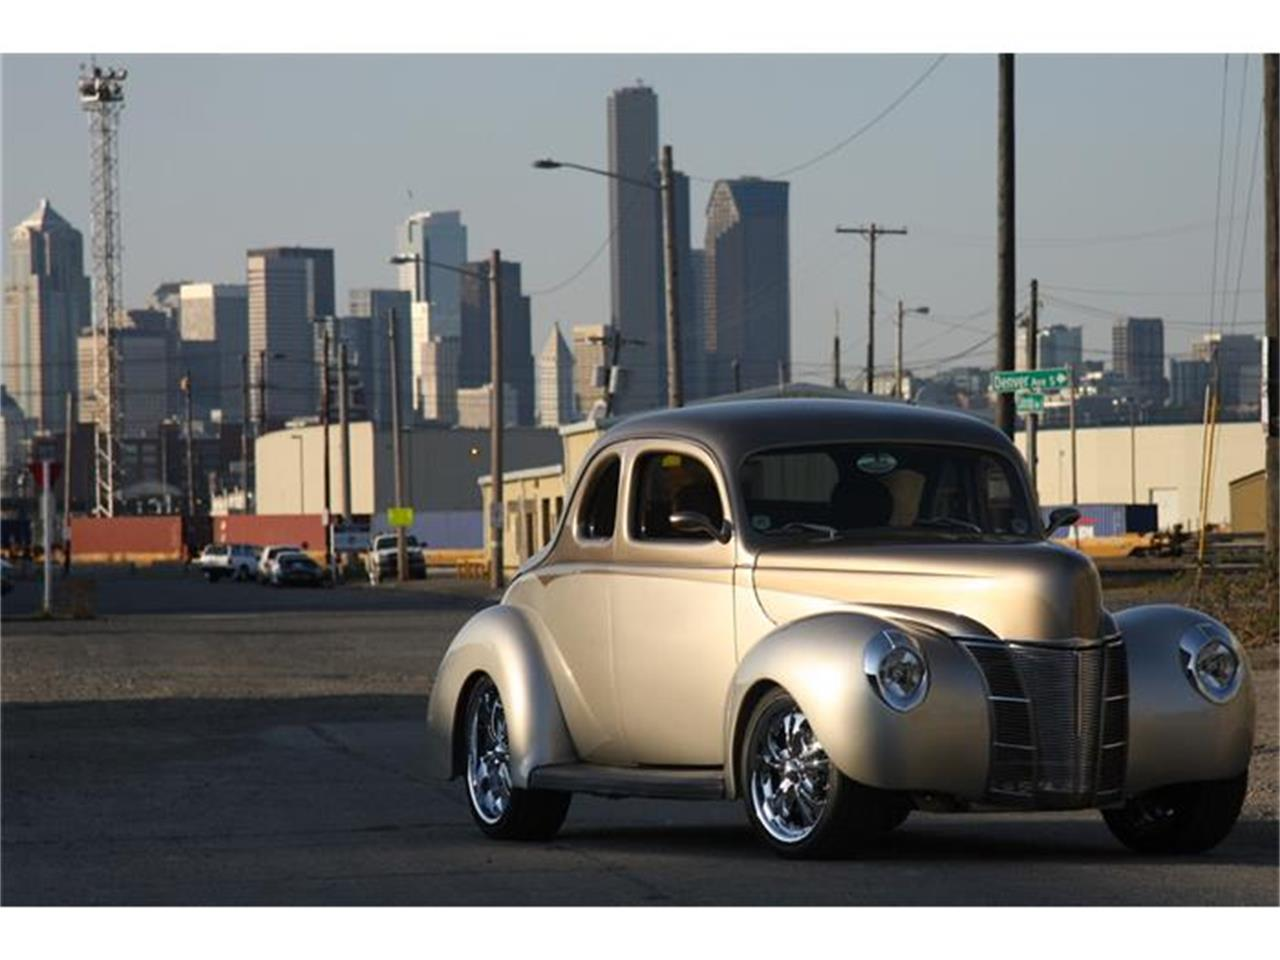 Large Picture of '40 Ford Deluxe located in AUSTIN Texas Offered by a Private Seller - AMFH